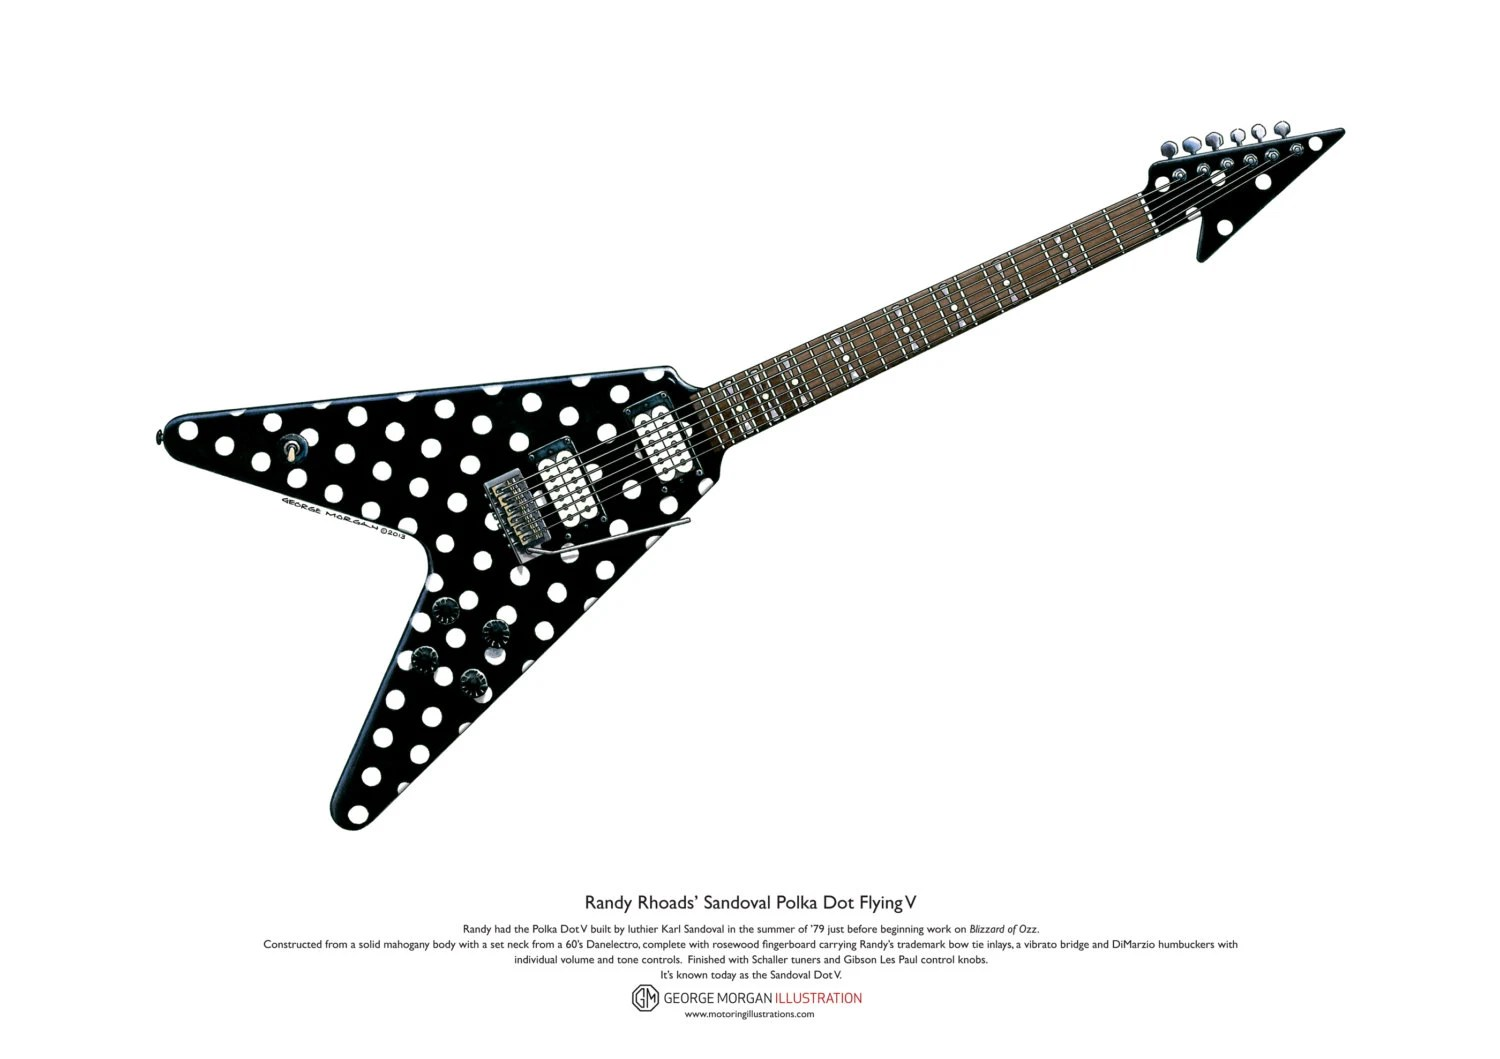 Randy Rhoads Sandoval Polka Dot Flying V Art Poster A3